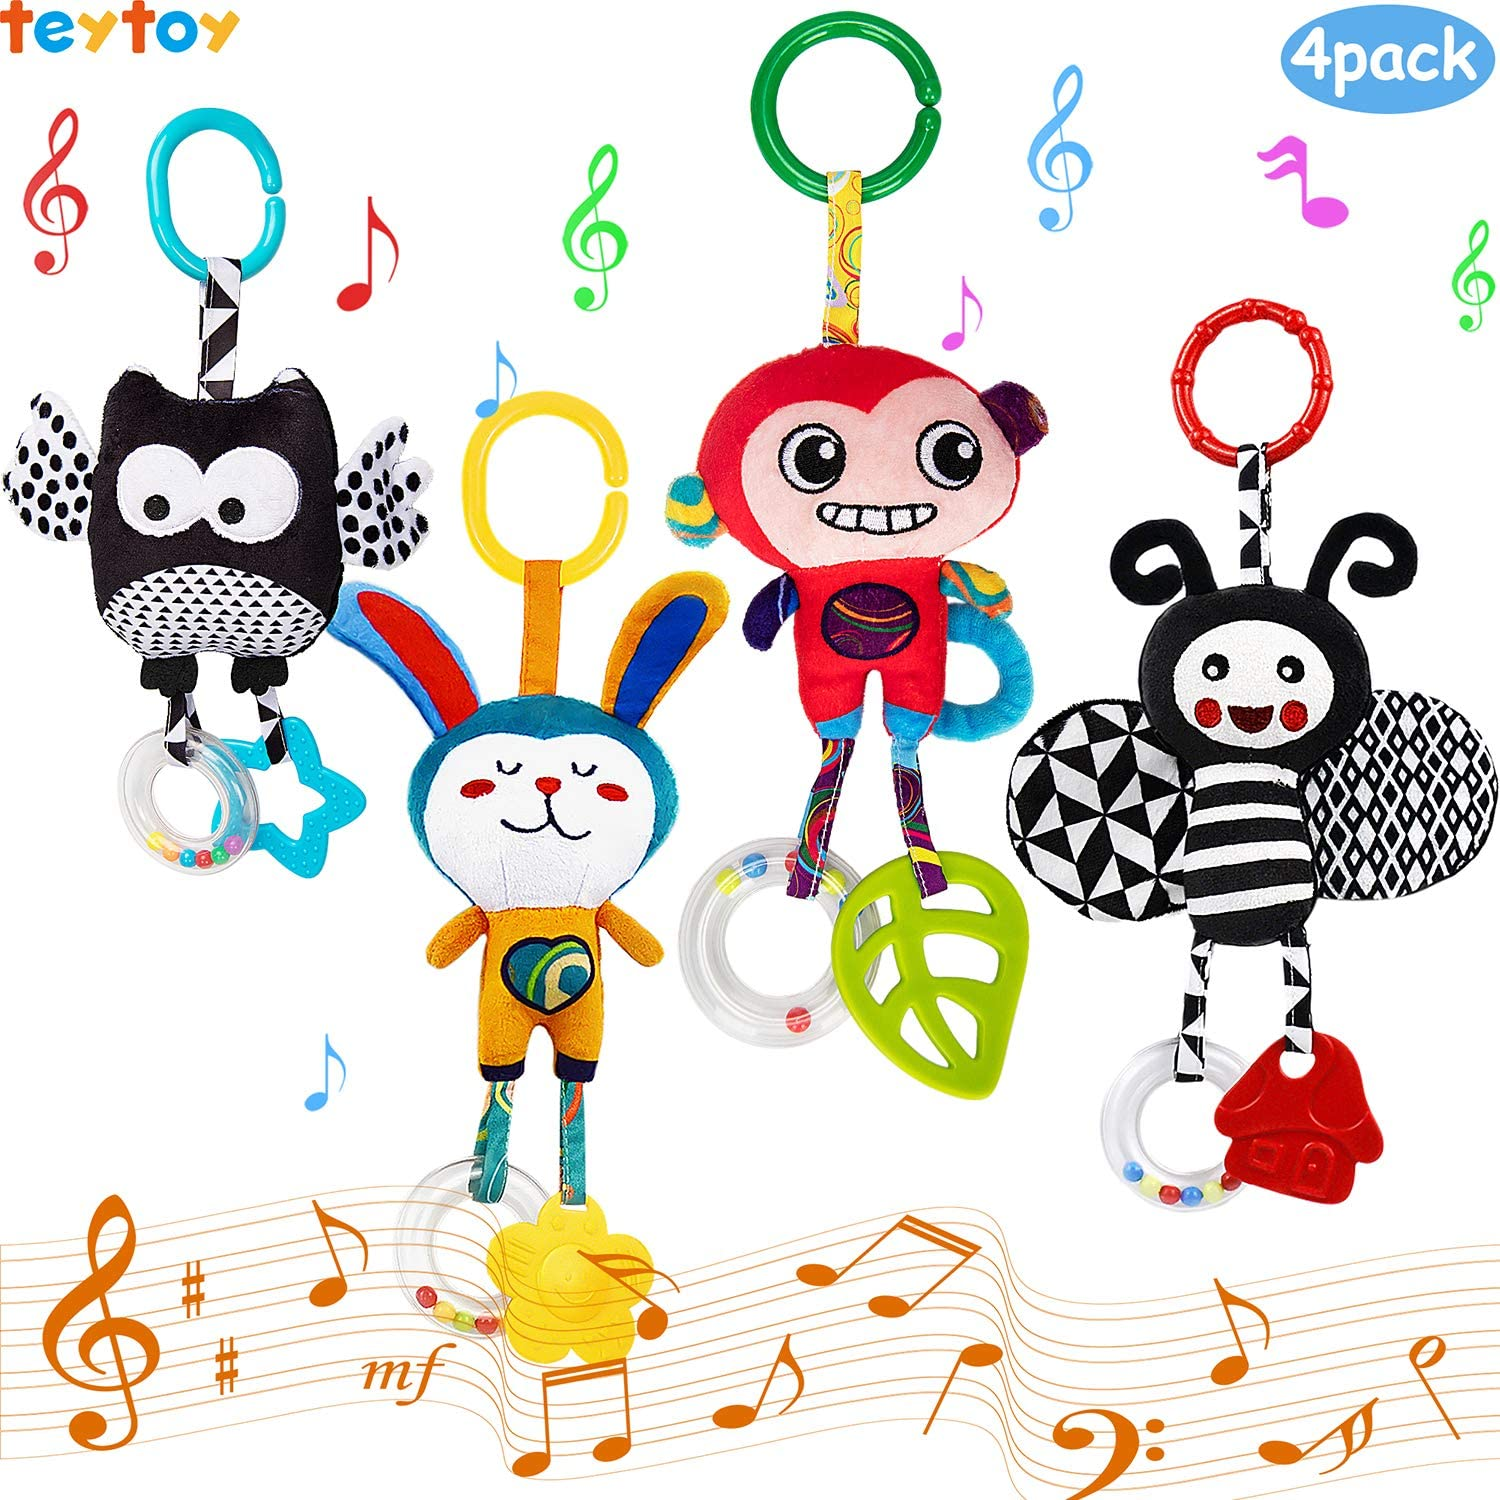 teytoy My First Baby Toy, Animal Hanging Rattle Toys, Baby Bed Crib Car Seat Travel Stroller Soft Plush Crinkle Toys for Infant, Newborn Birthday Gifts for 0, 3, 6, 9, 12 Months(4 Pack)